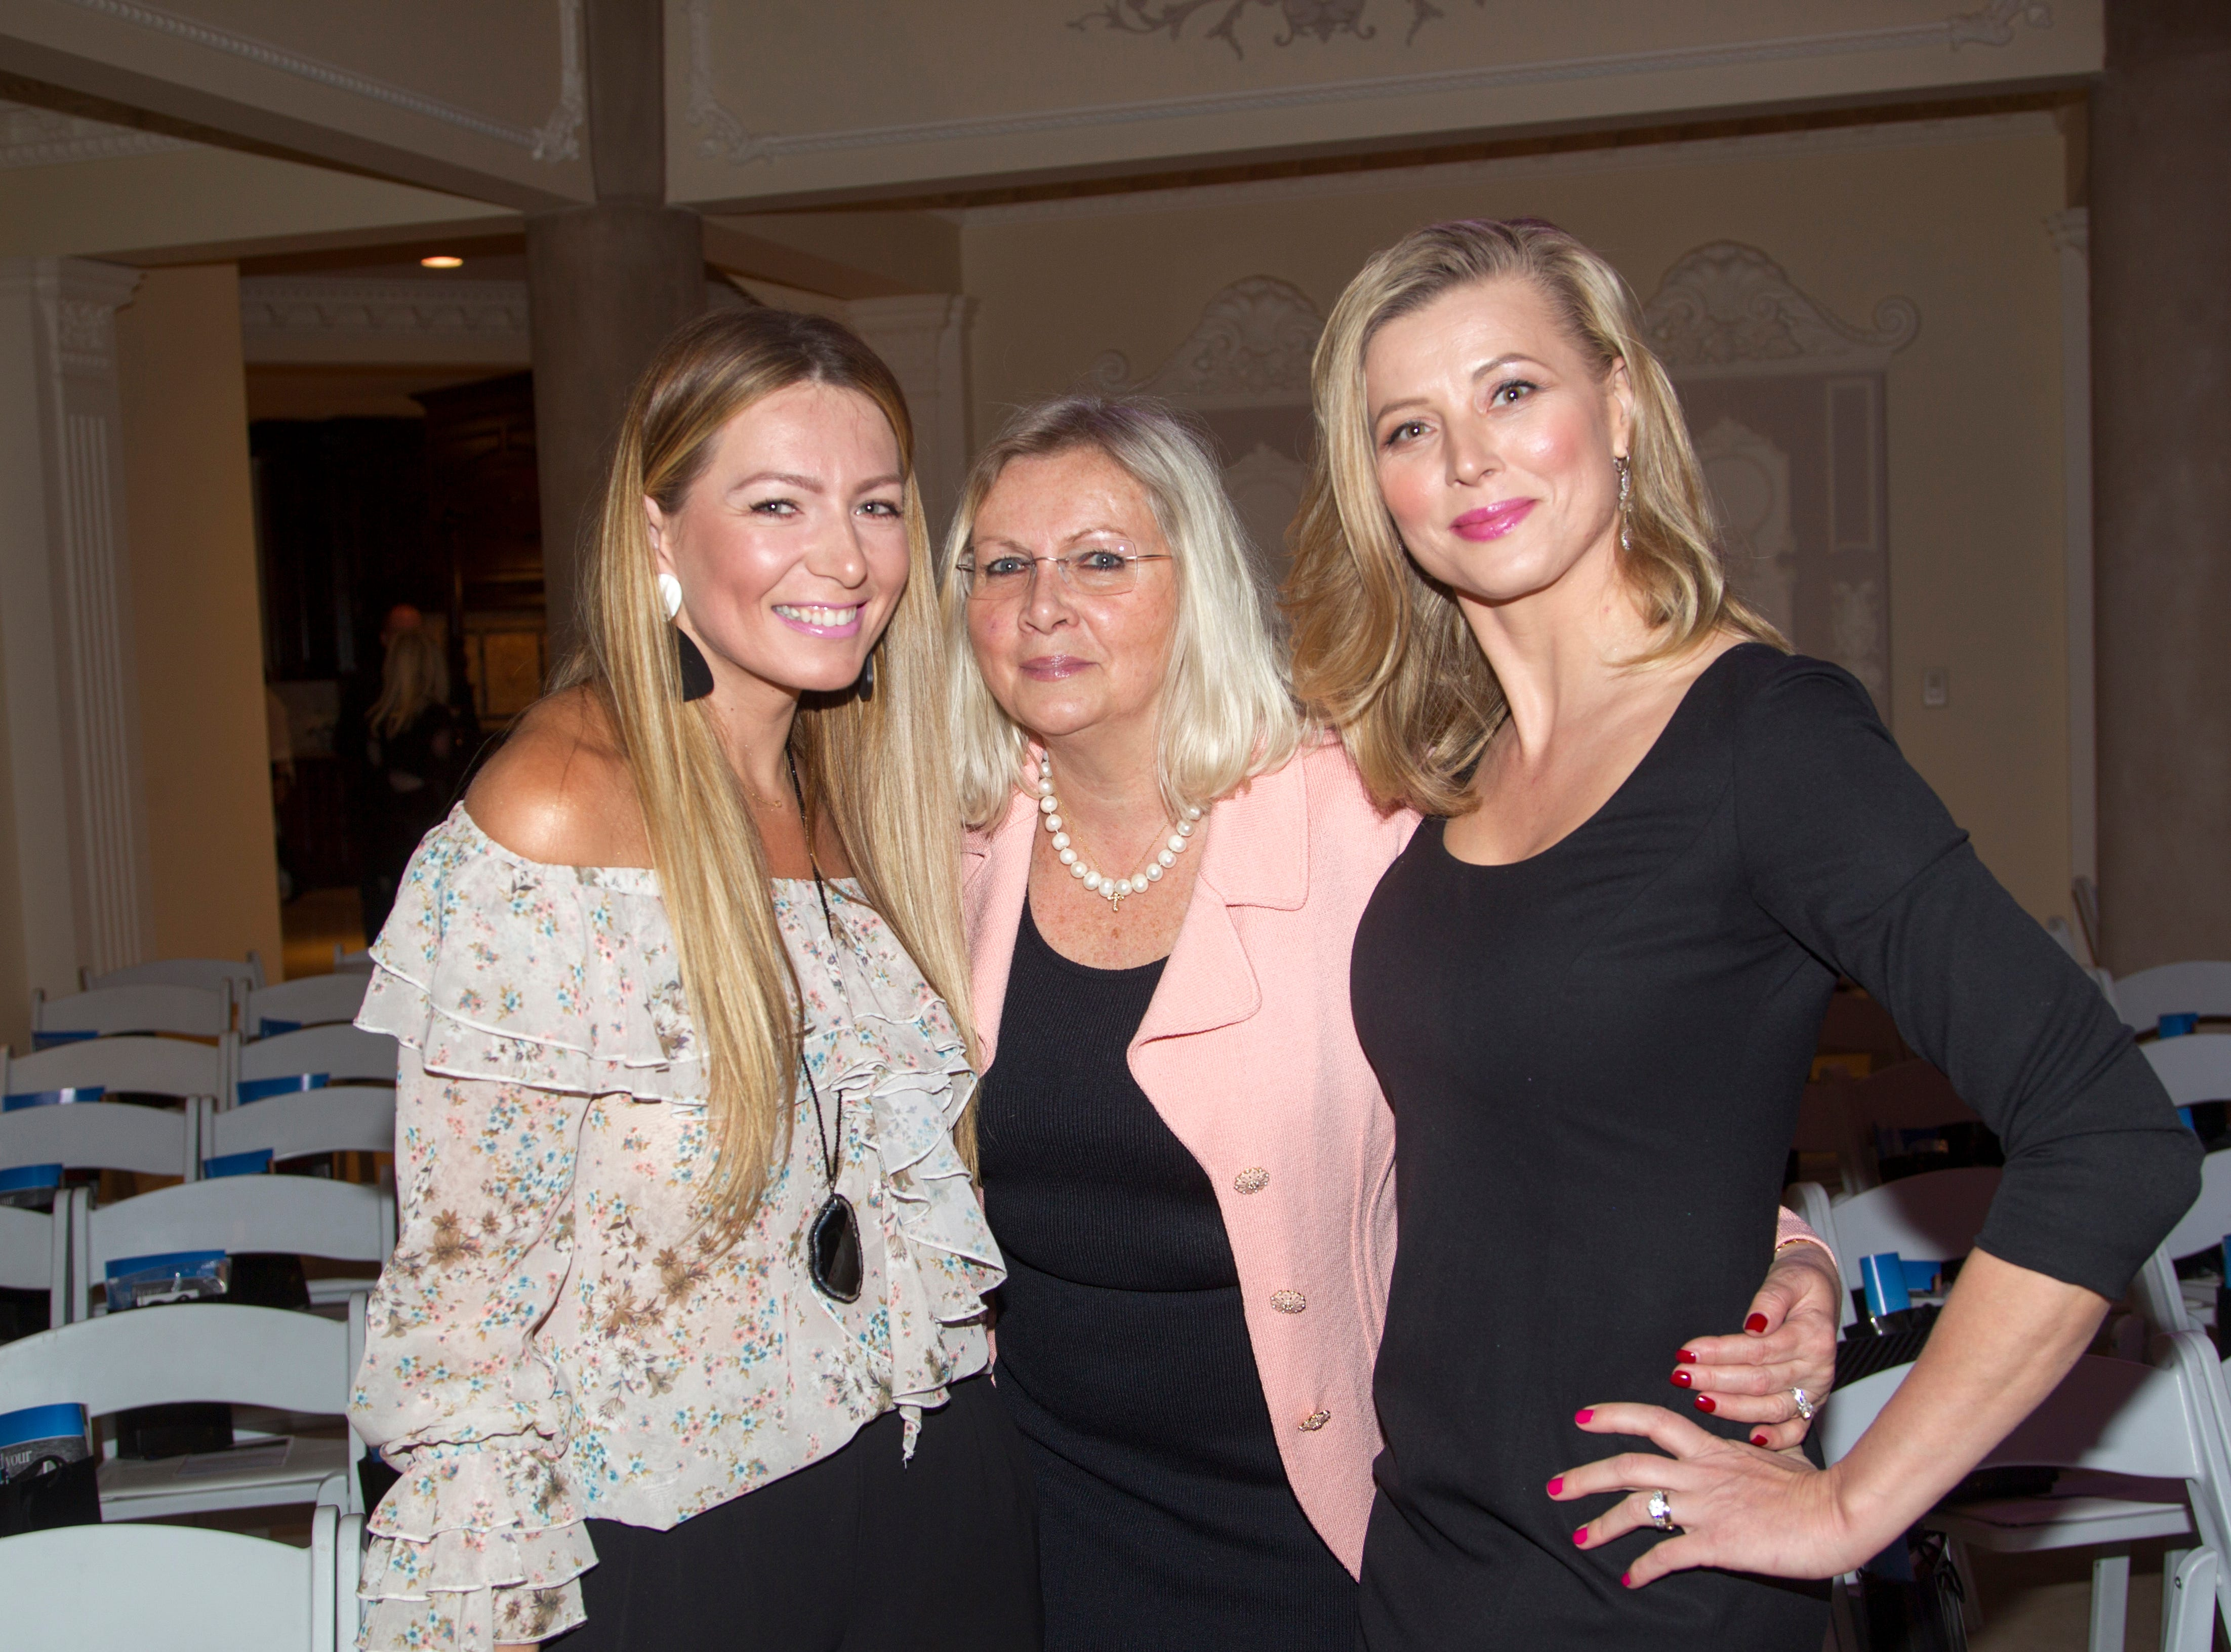 Justyna, Margaret, Beata. Saddle River Arts Council presents An Evening of Giving Back featureing Eric Genuis in Saddle River. 03/30/2019